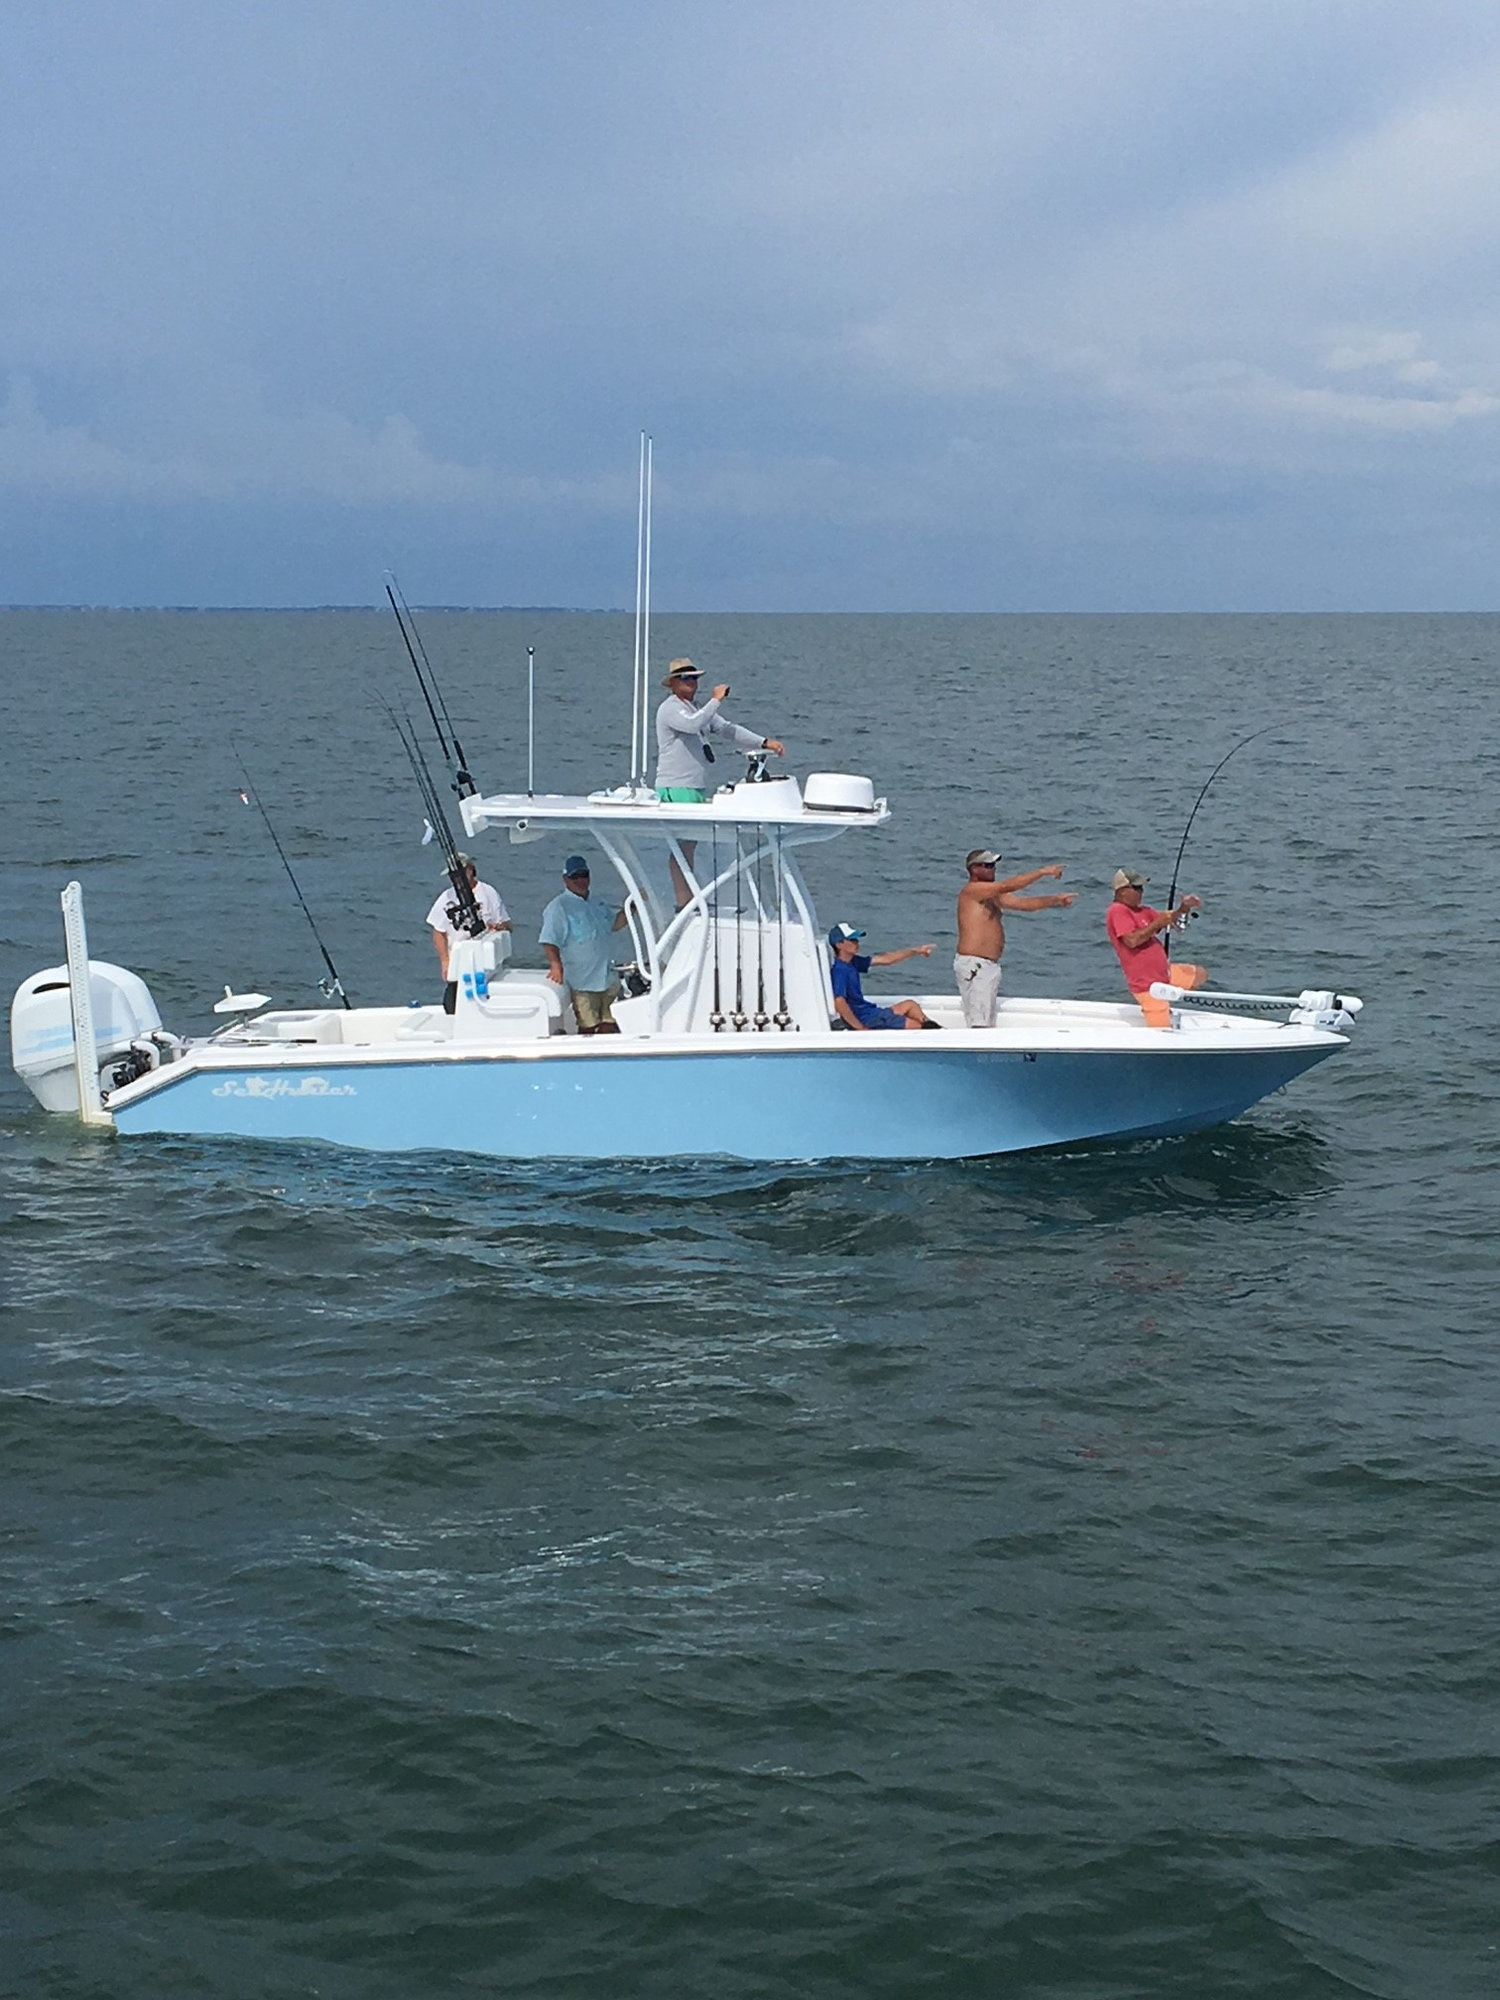 Rigid Light Bar >> 2017 28' Seahunter Floridian - The Hull Truth - Boating and Fishing Forum